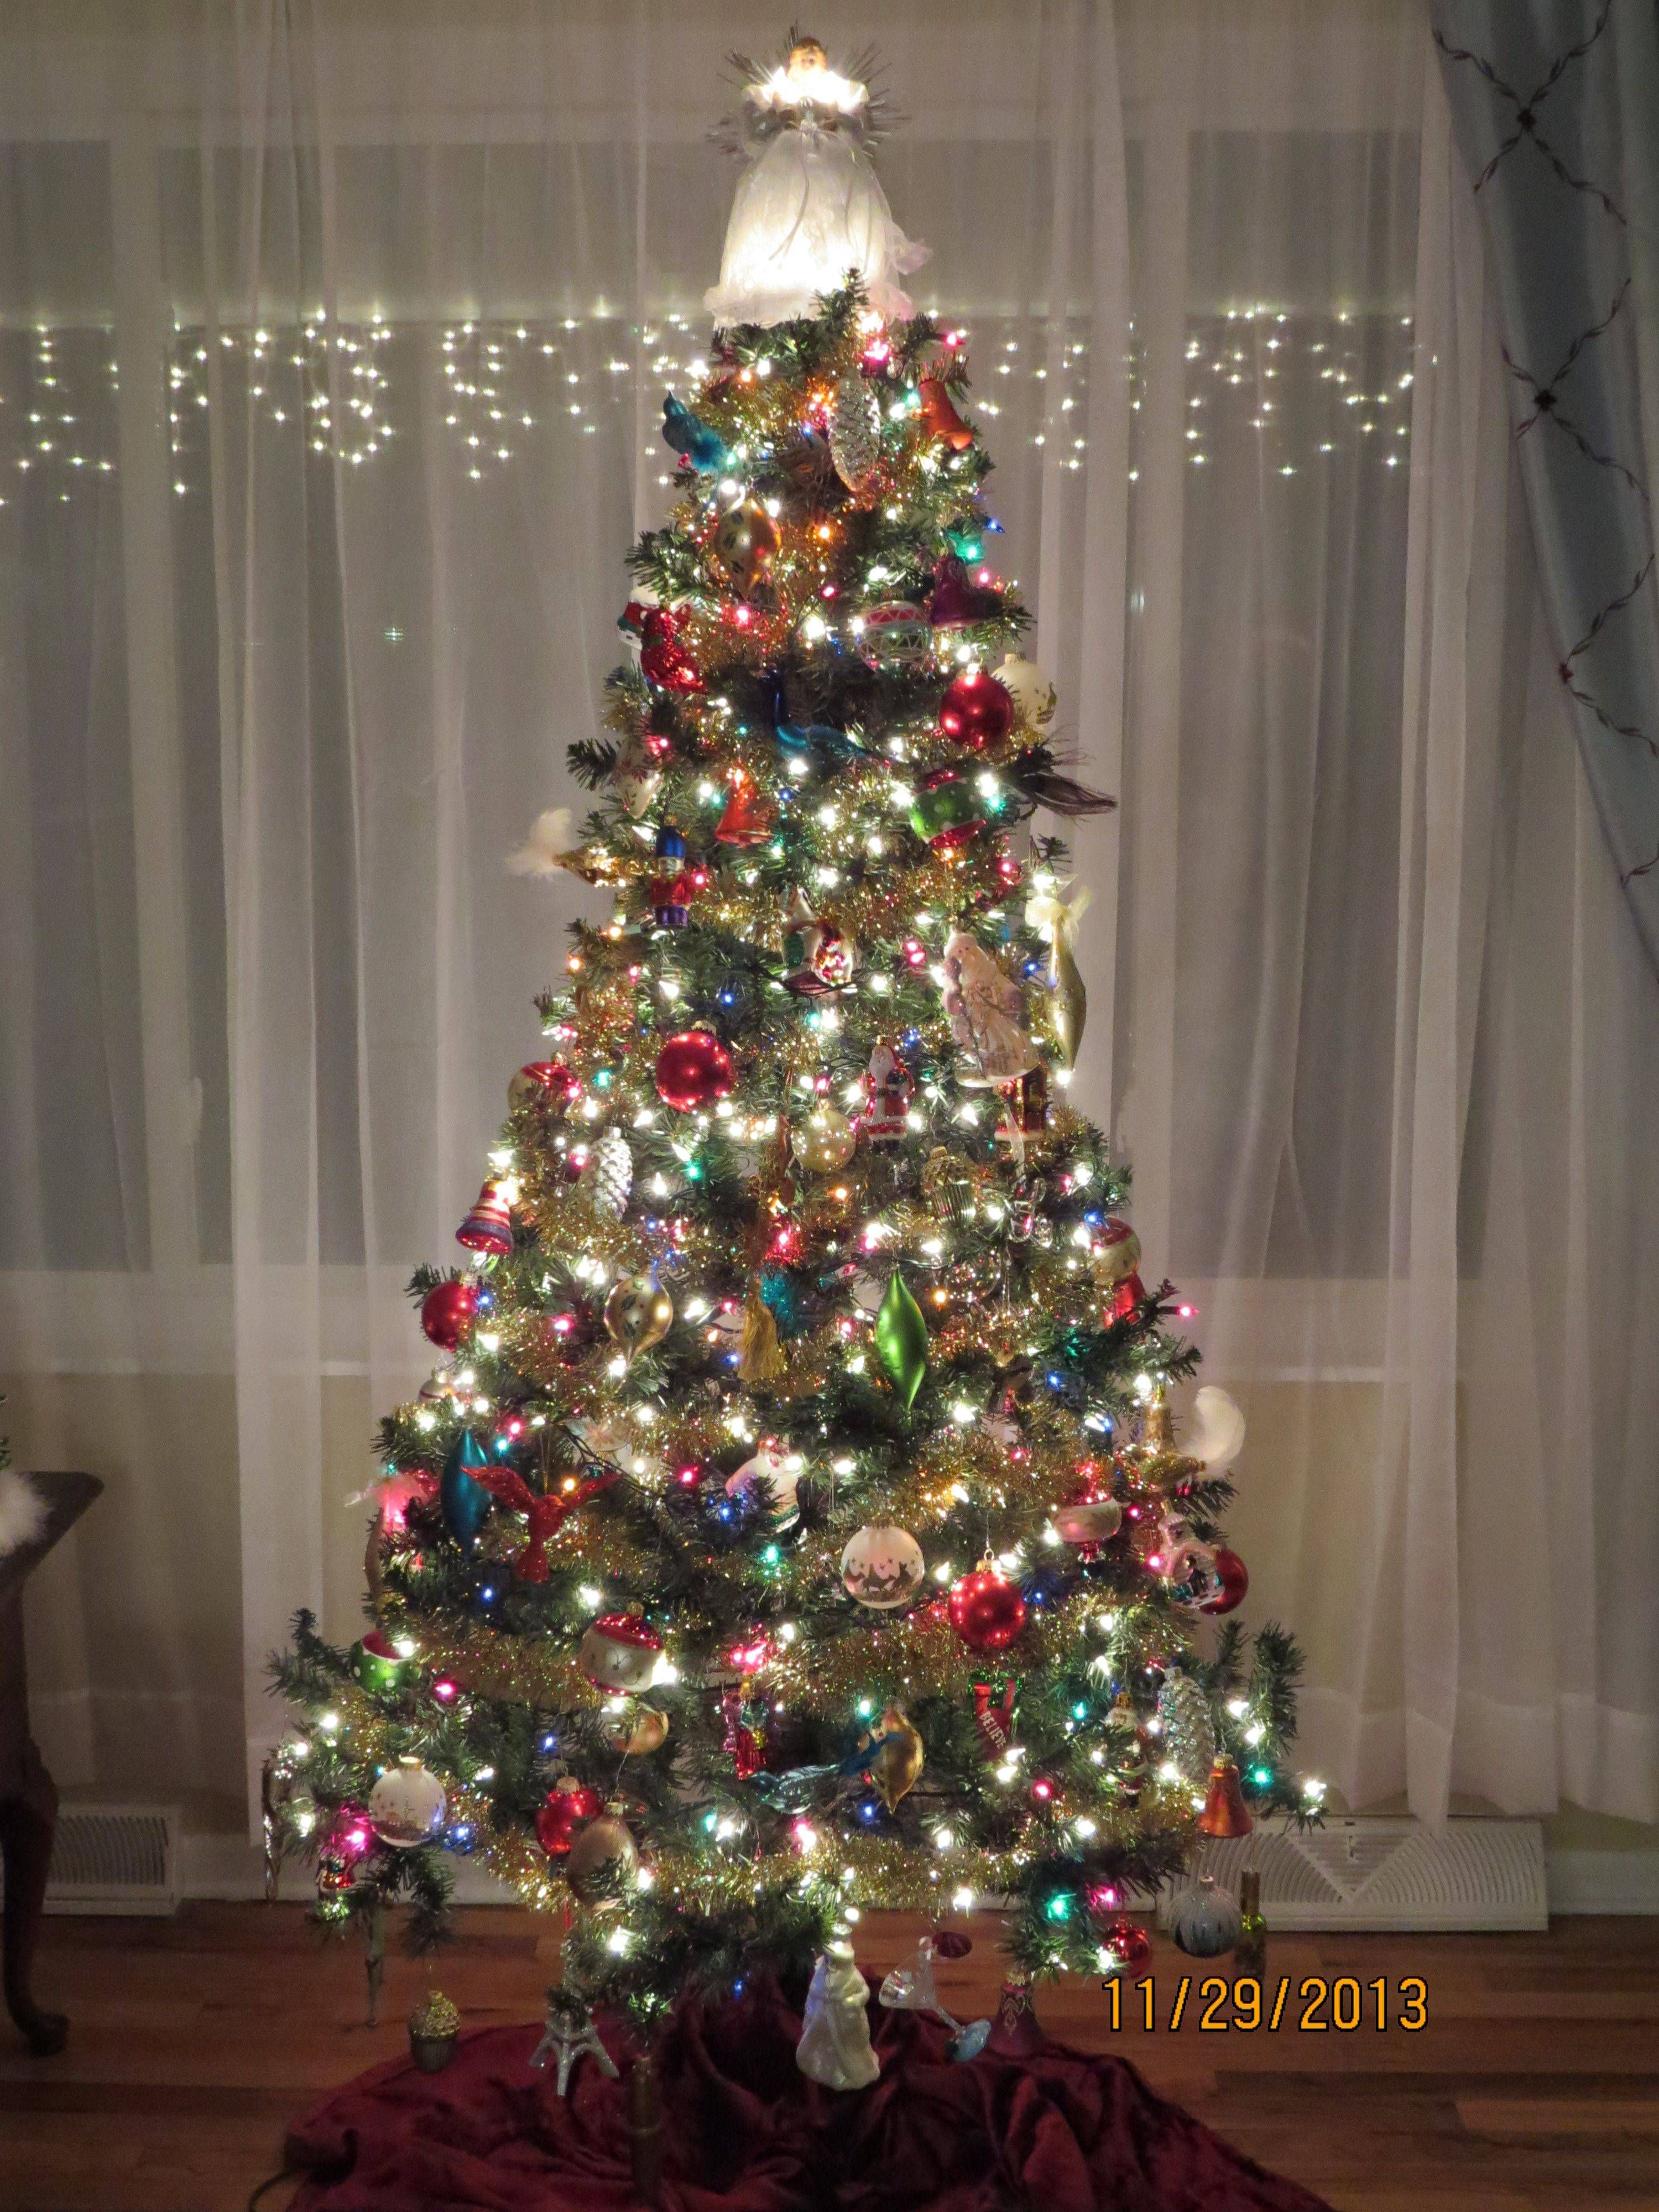 Jewel Colored Christmas Decorations More Image Visit Https H Christmas Tree With Coloured Lights Colorful Christmas Tree Christmas Tree Decorations Diy